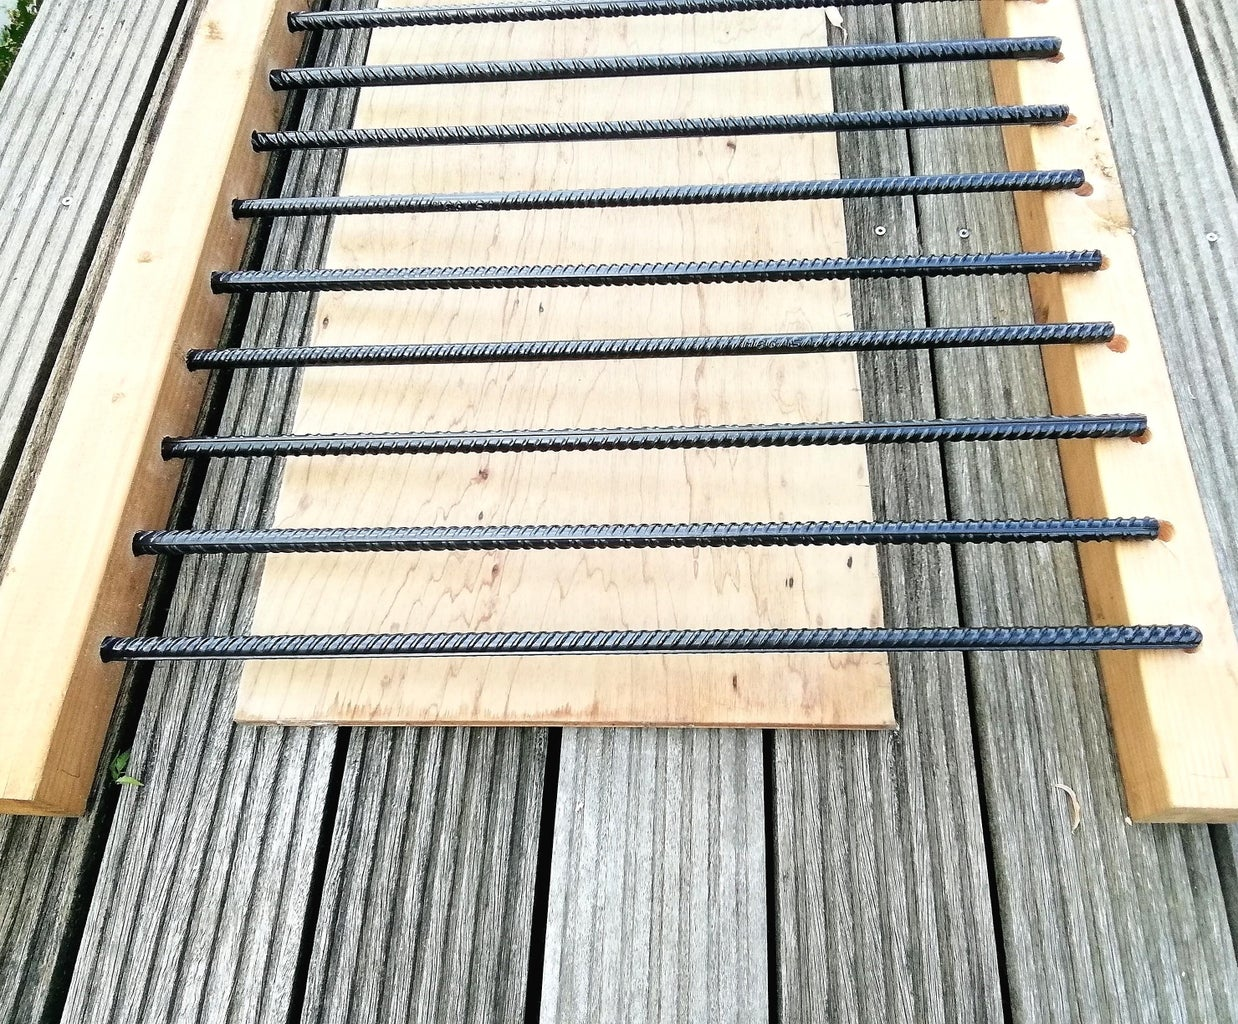 Place the Pickets in the Holes of the Rails